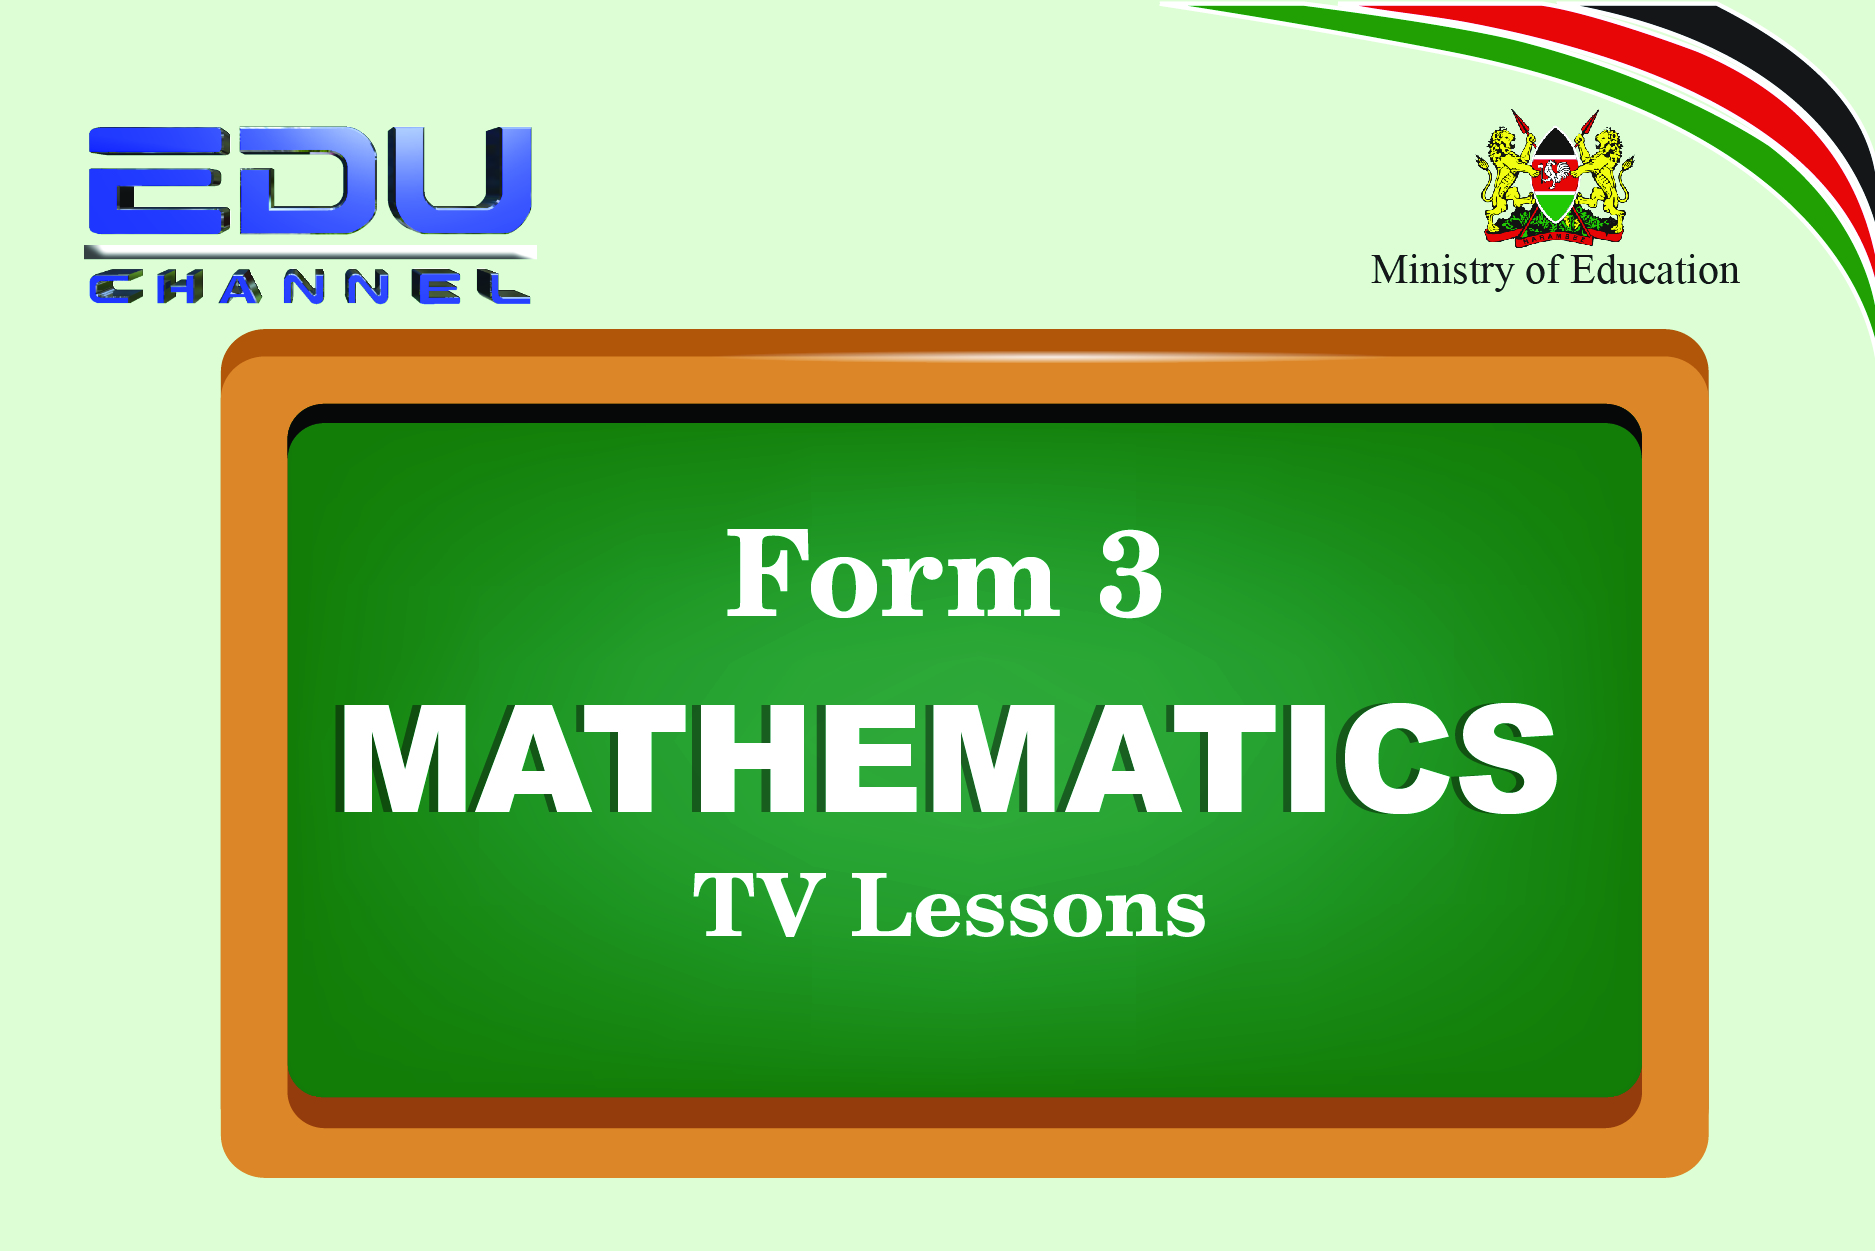 Form 3 Mathematics Lesson 2: Further Logarithms